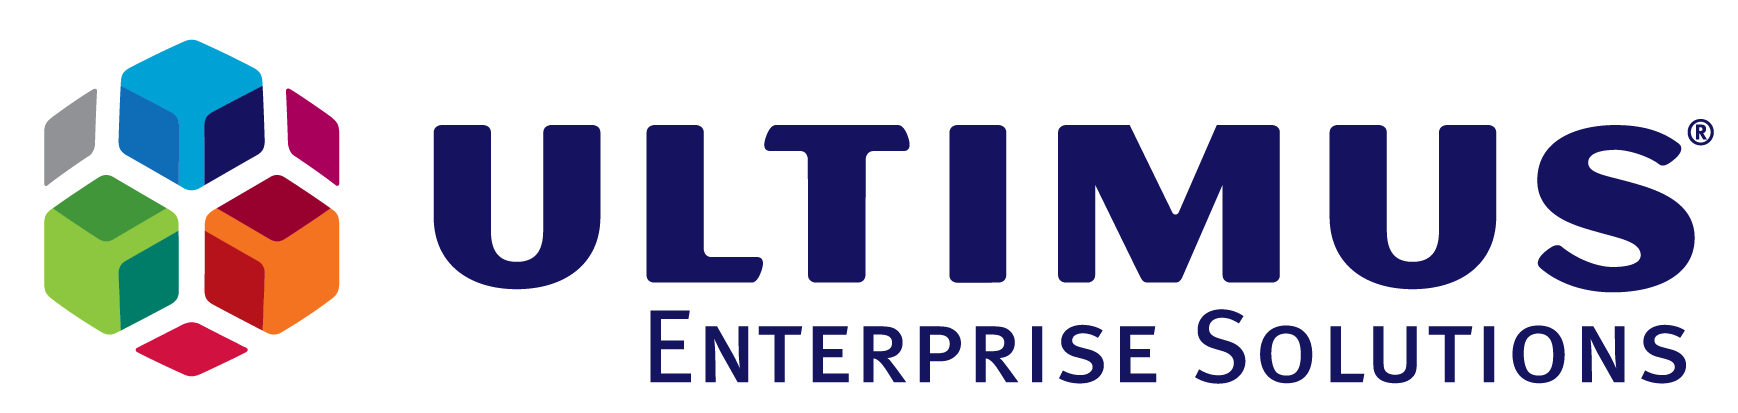 Ultimus BPM Enterprise Software Solutions